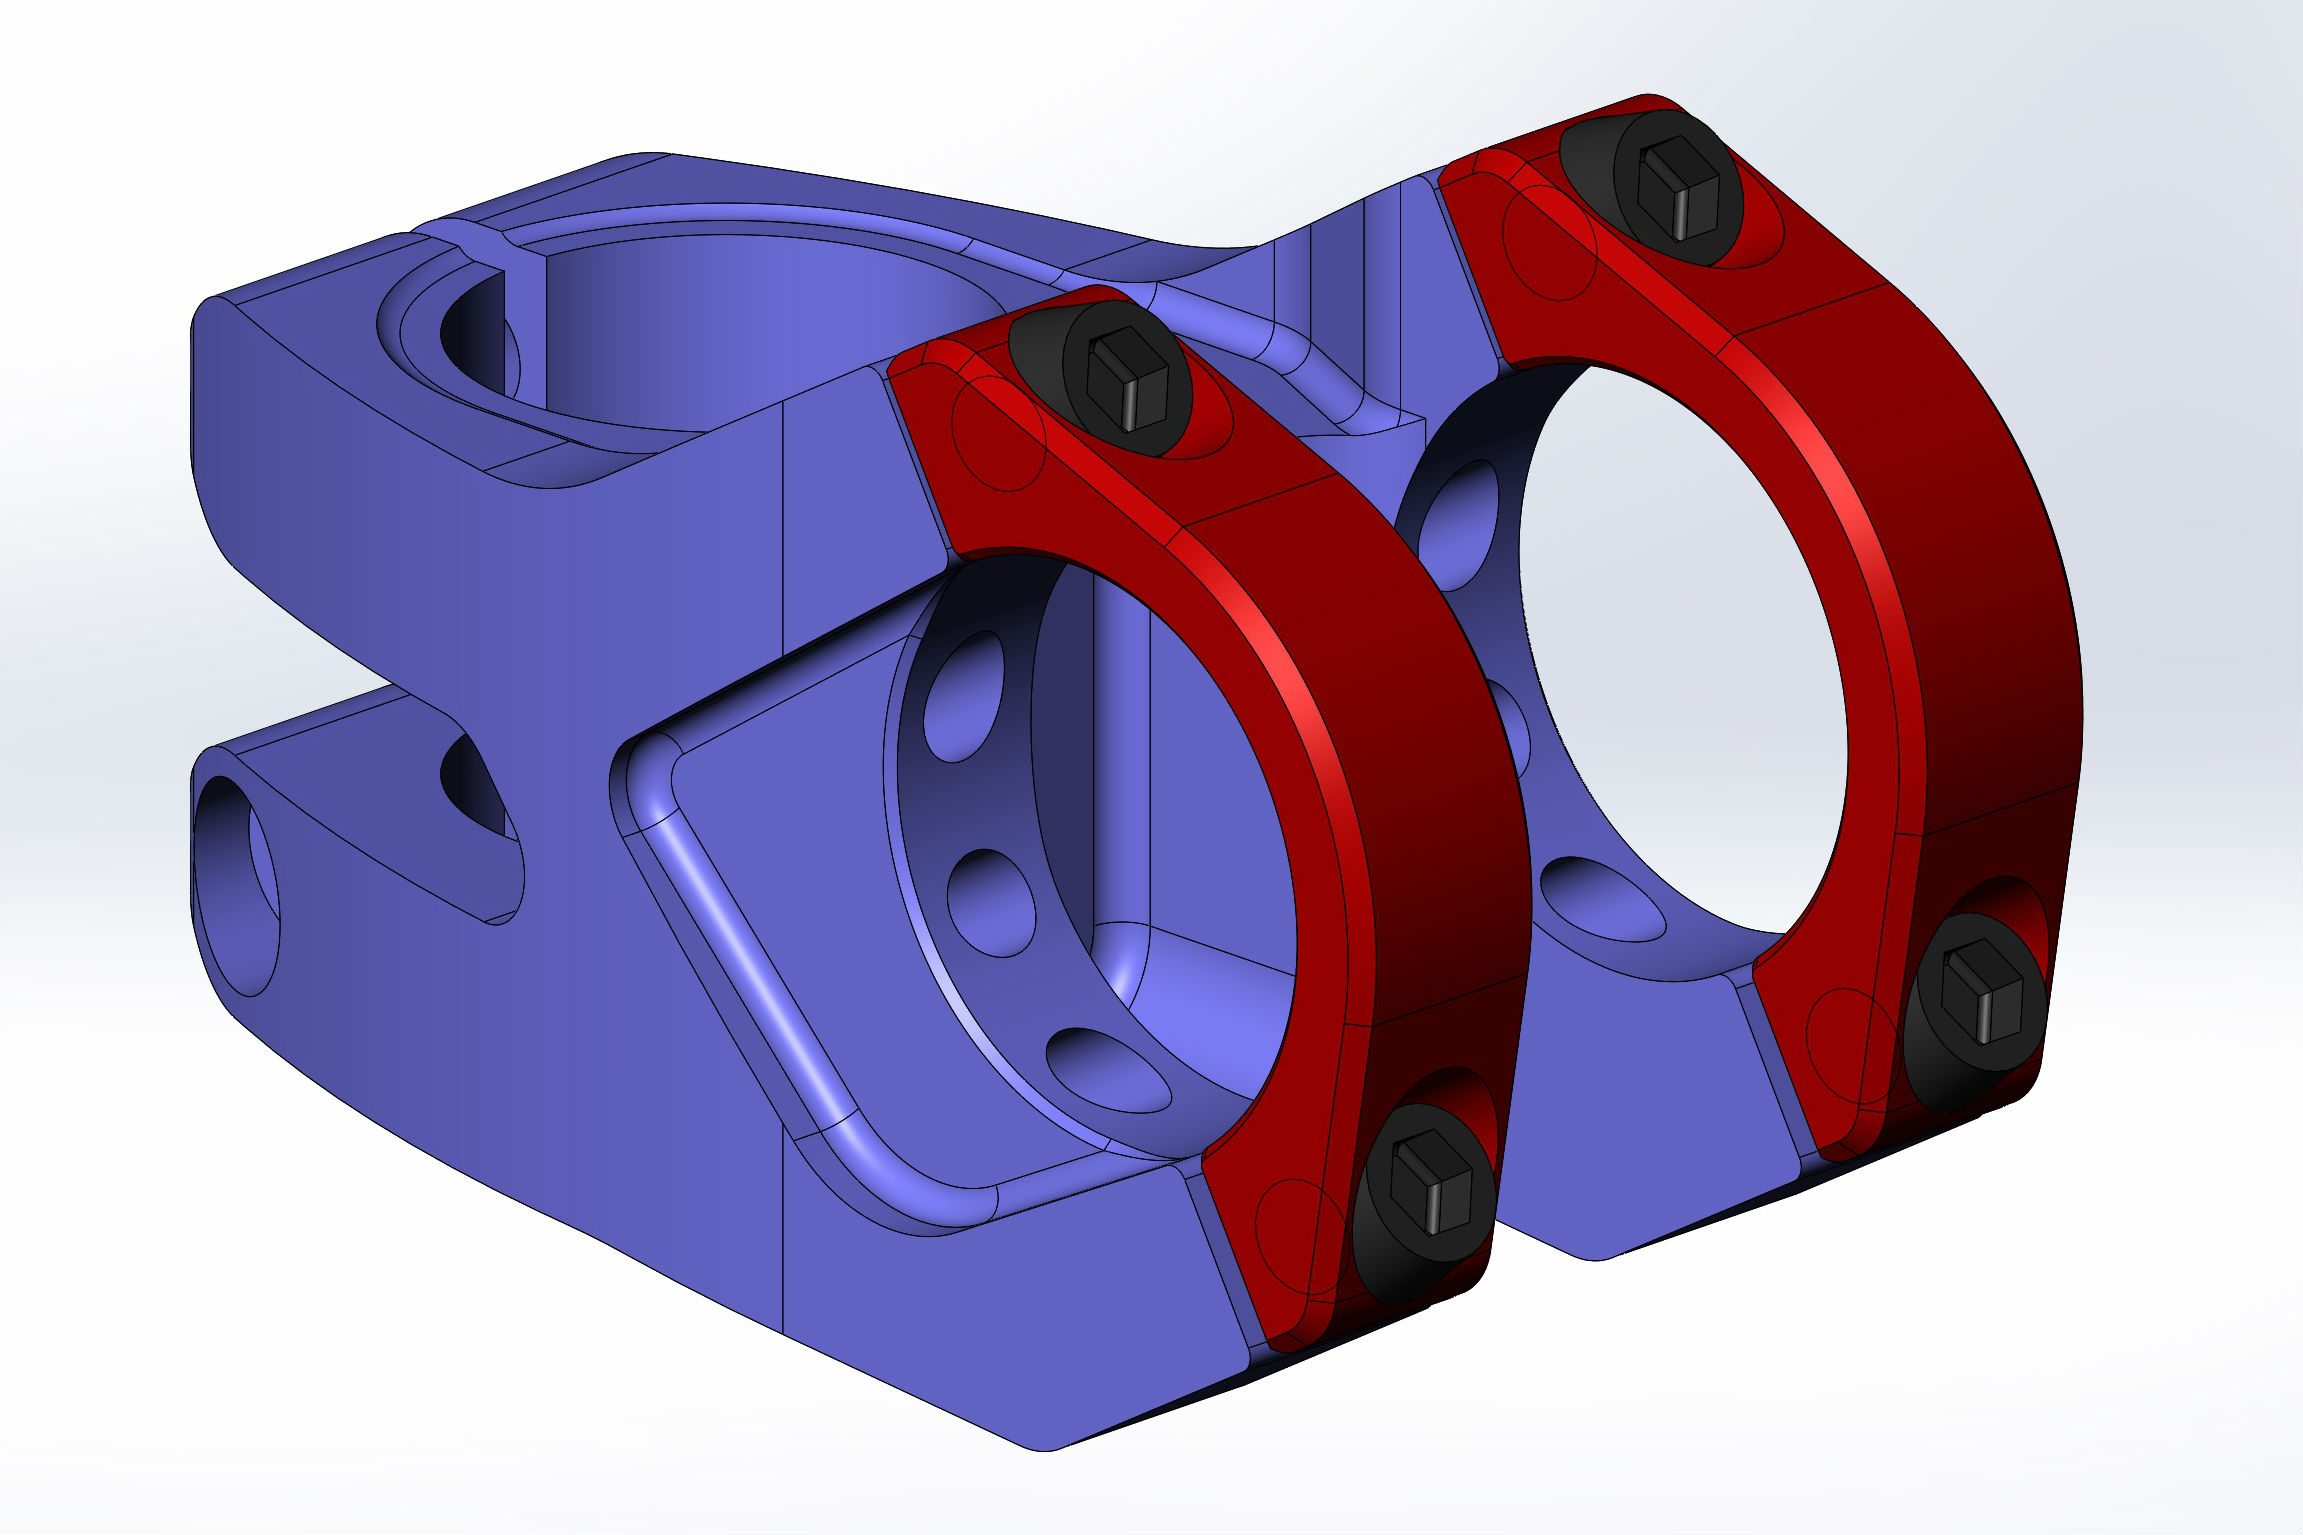 5 Axis CNC Stems - Manufactured to customer's unique designs. 24/7 production with Matsuura 32 pallet 5 axis cell for maximum efficiency and quality finish.MOQ - from 100 p/size/modelPrice: Asia competitive